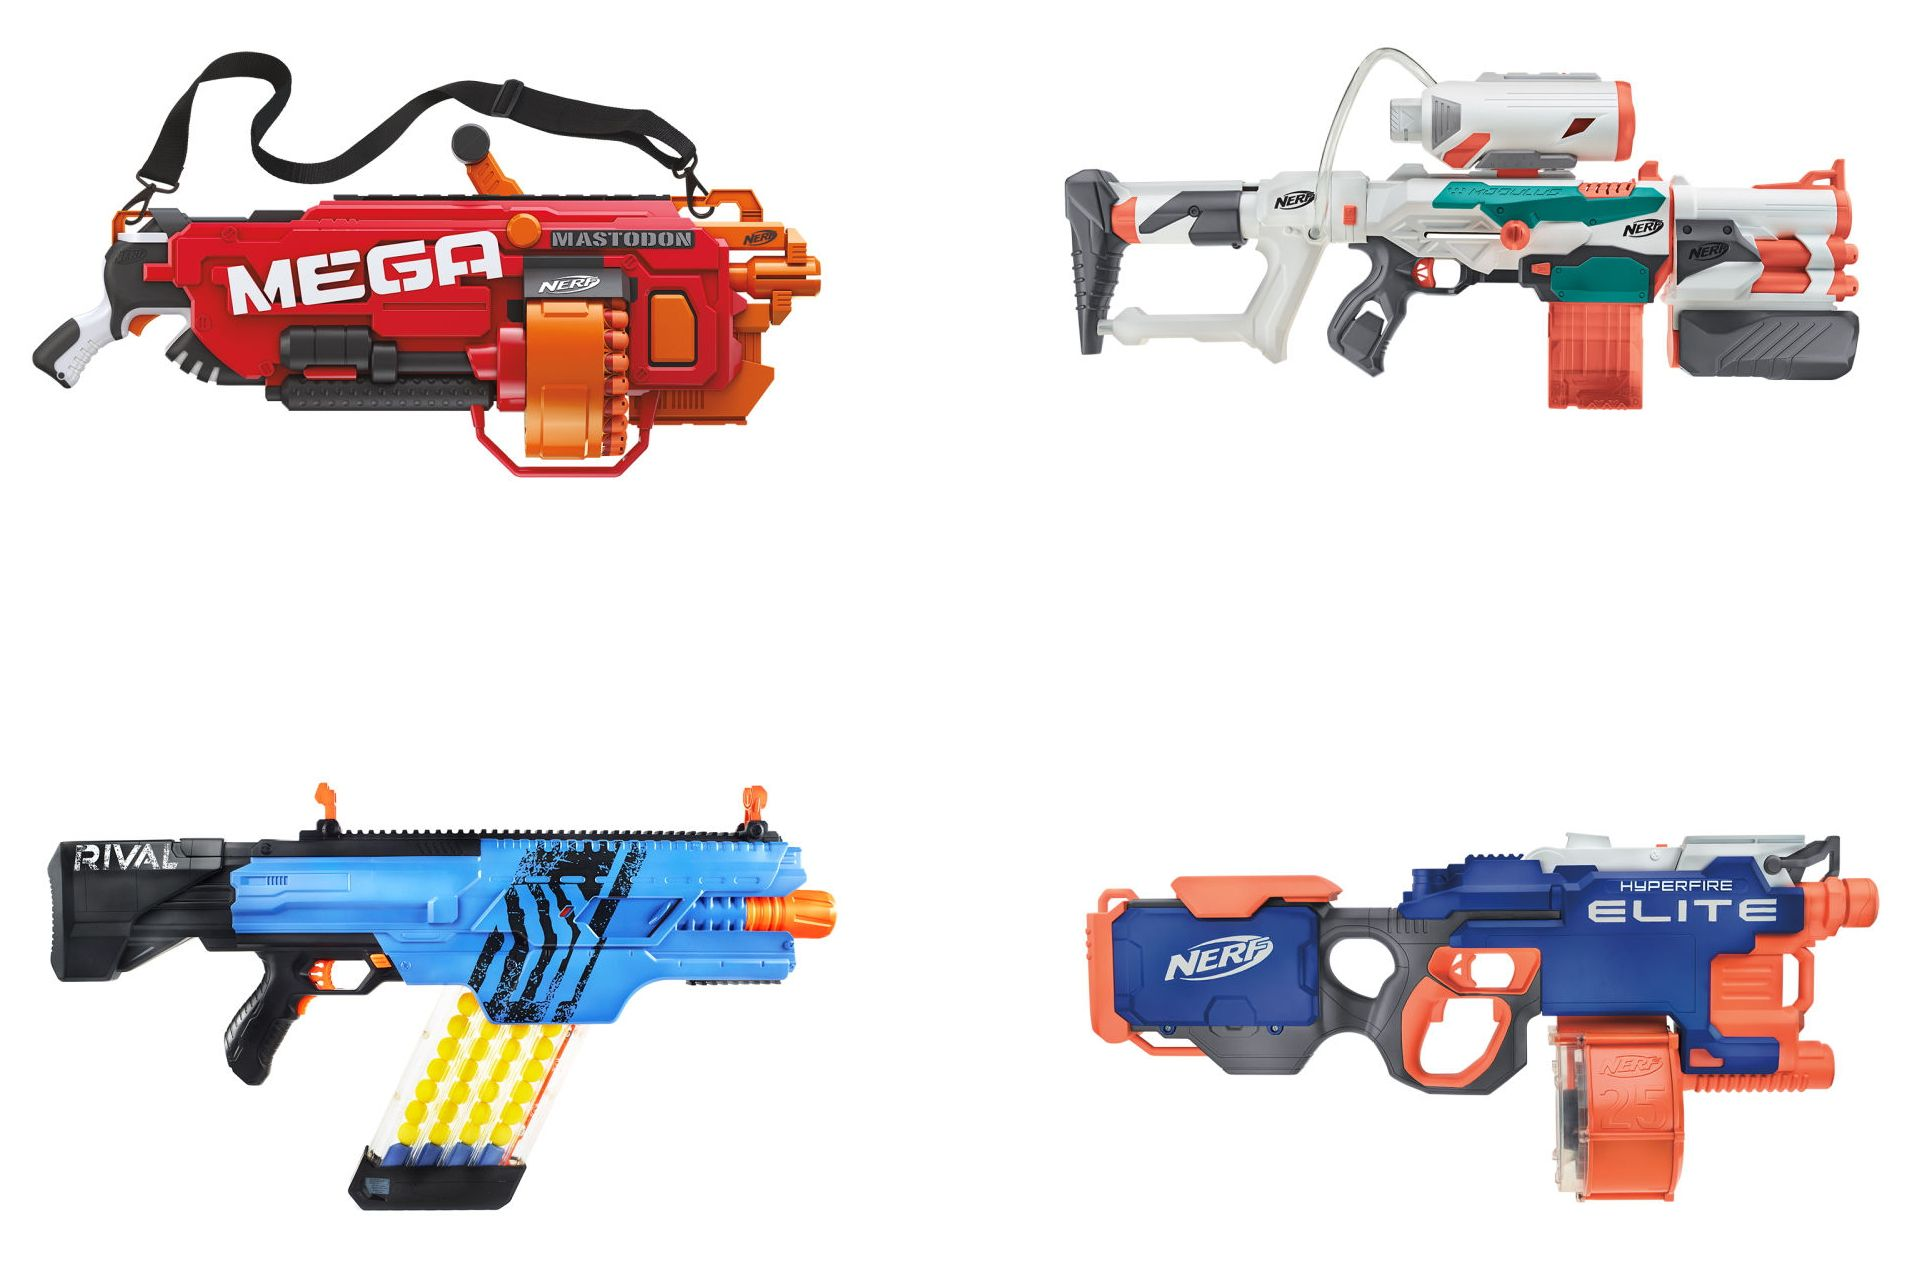 NGA New Nerf News 2016 Another new blaster has been revealed This time